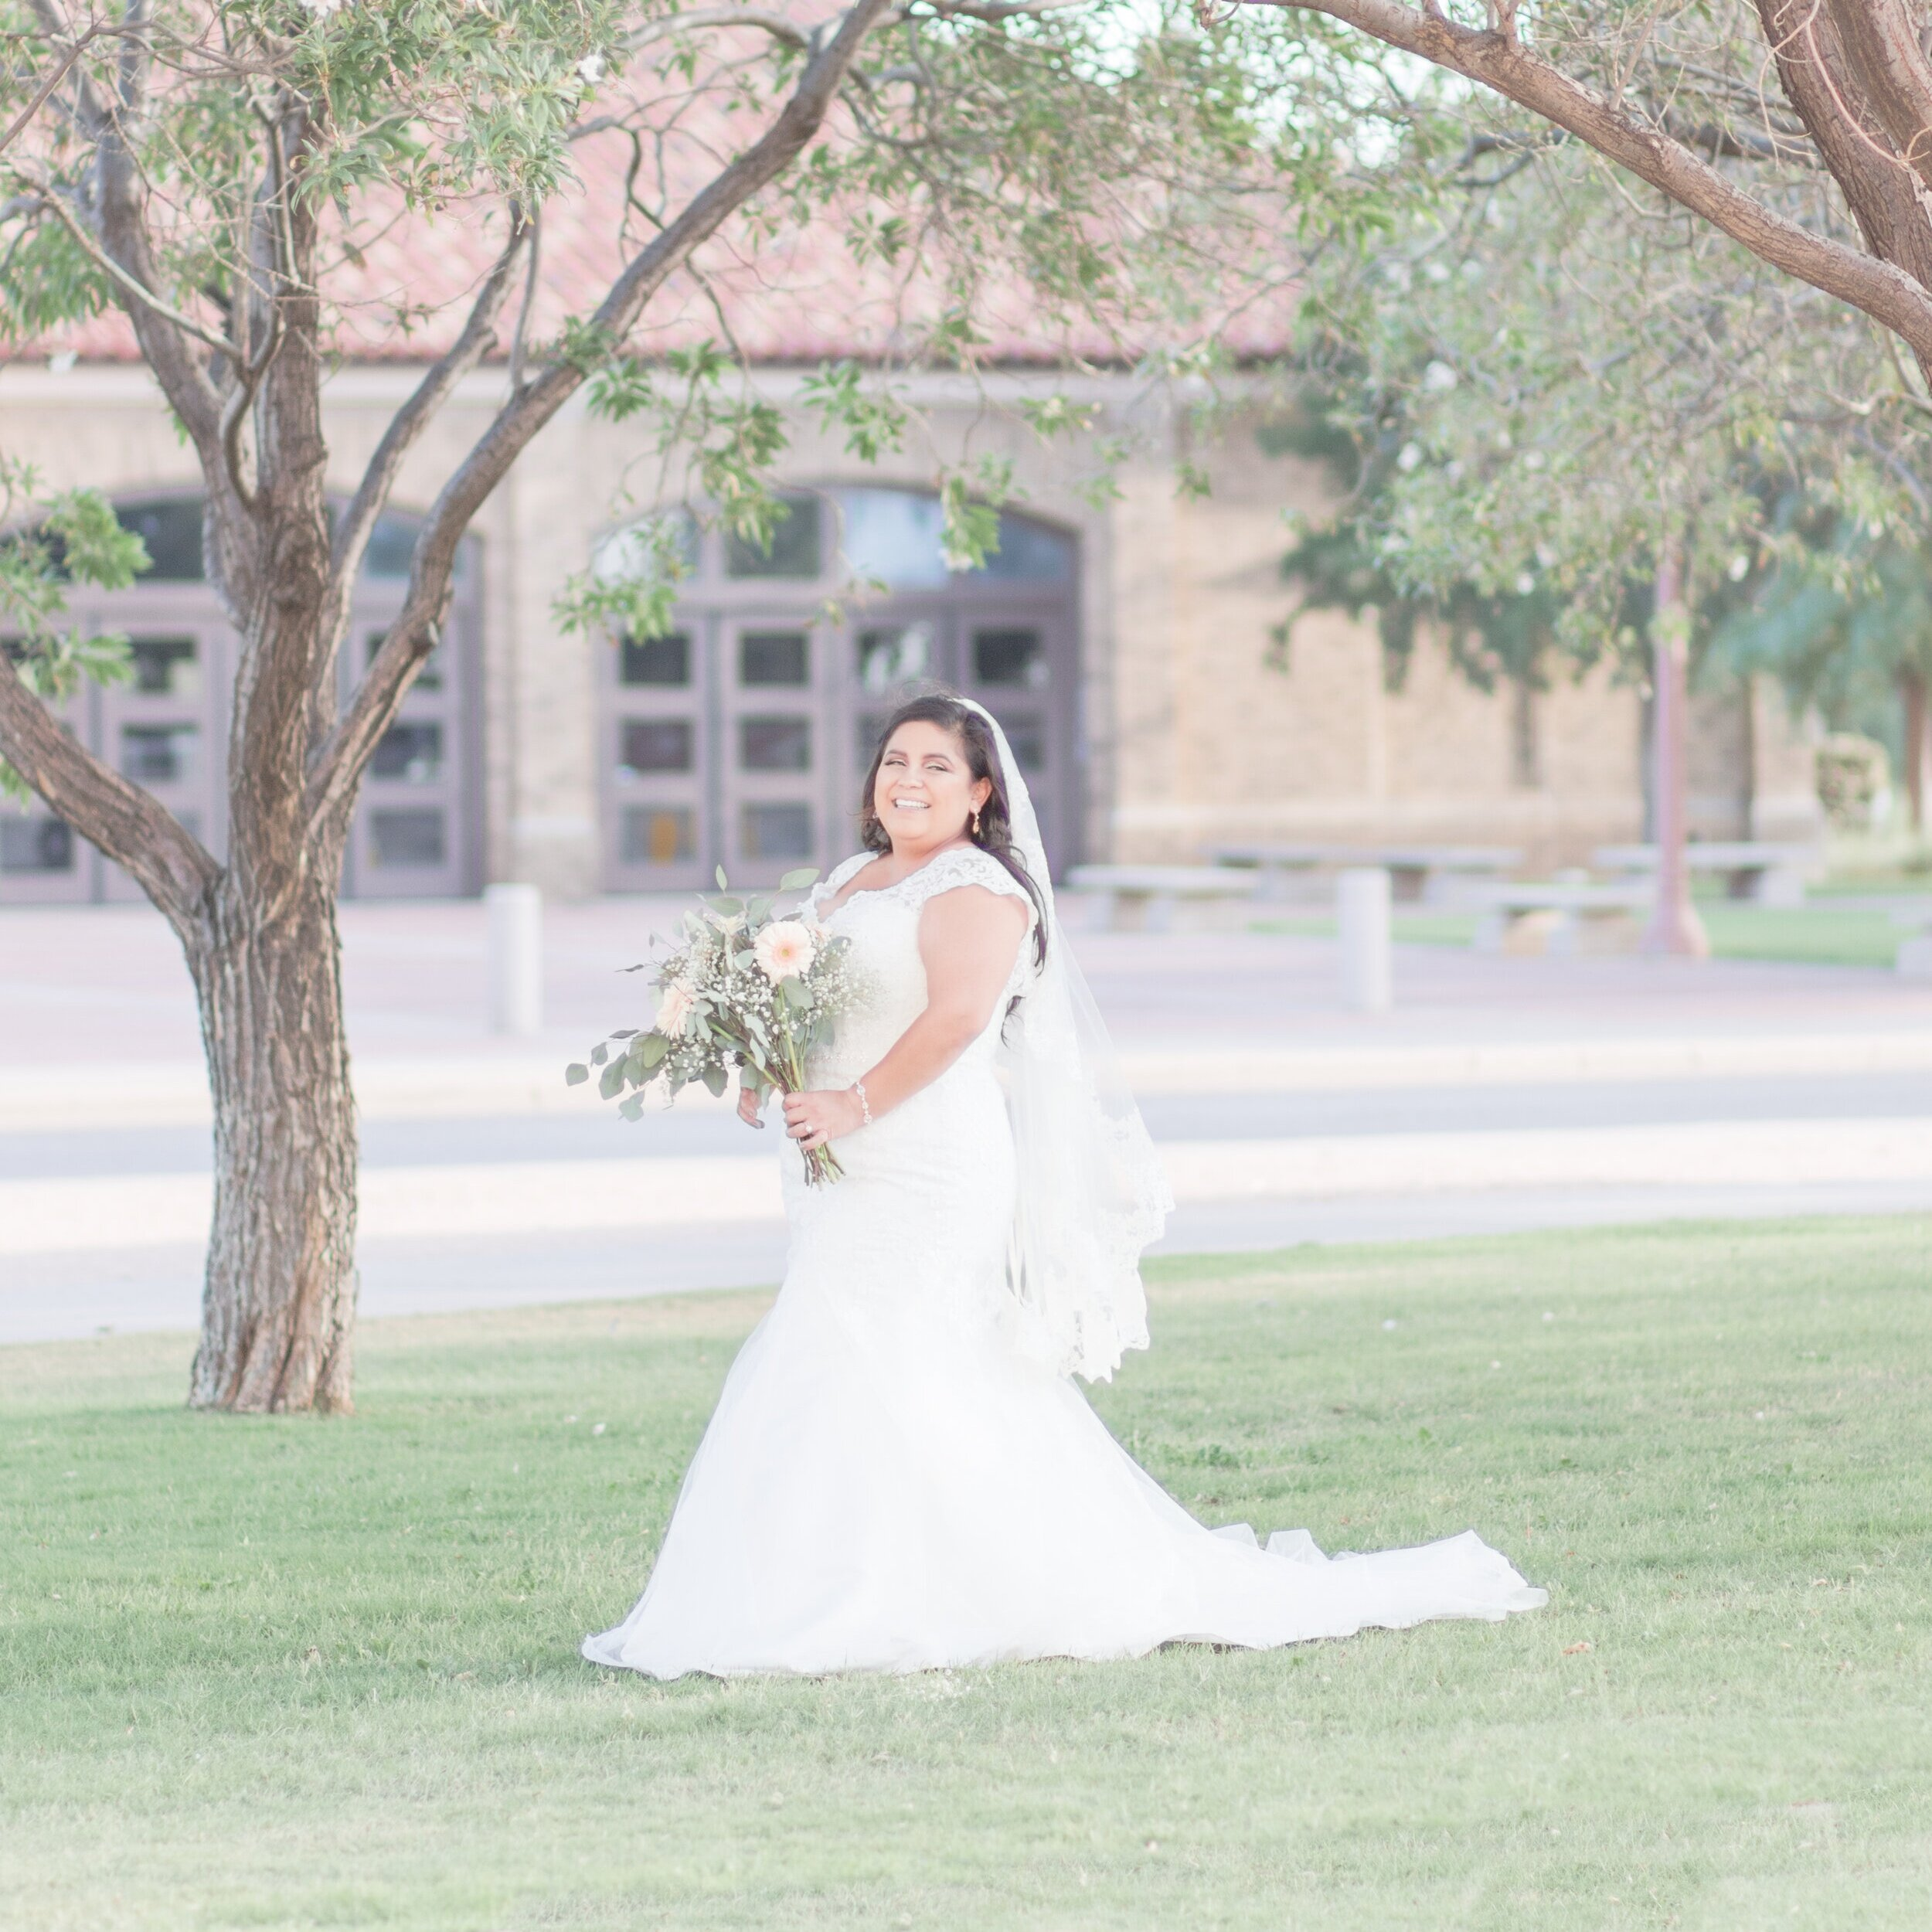 """Danielle Ortiz  """"Christina did such an amazing job with all of our wedding photos they came out absolutely beautiful she's the absolute sweetest person to work with. I would definitely recommend her to others that are needing photos done. 😊"""""""